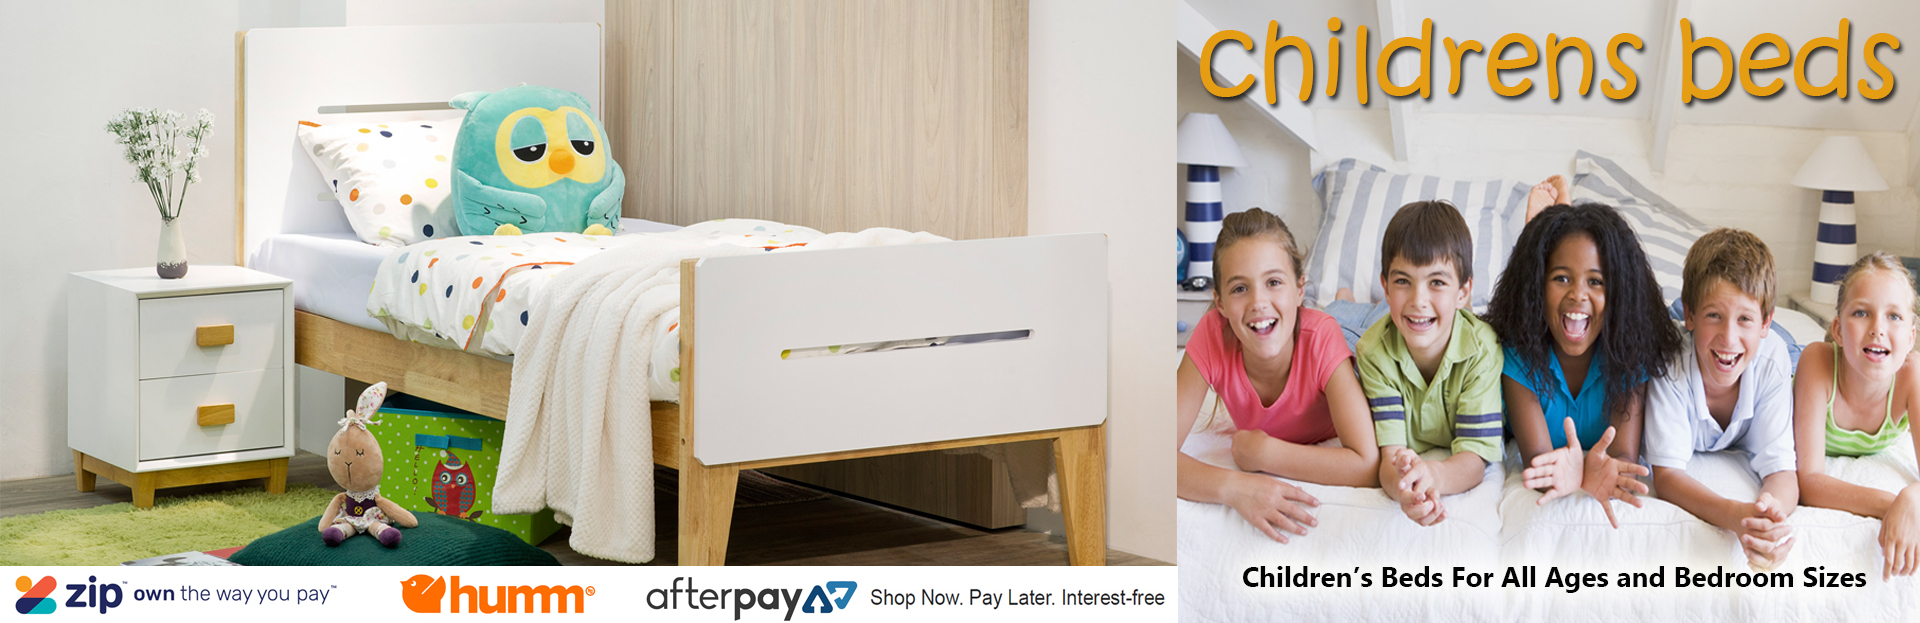 Single Mattresses Melbourne Childrens Beds Kids Beds Brisbane Kids Beds Melbourne Kids